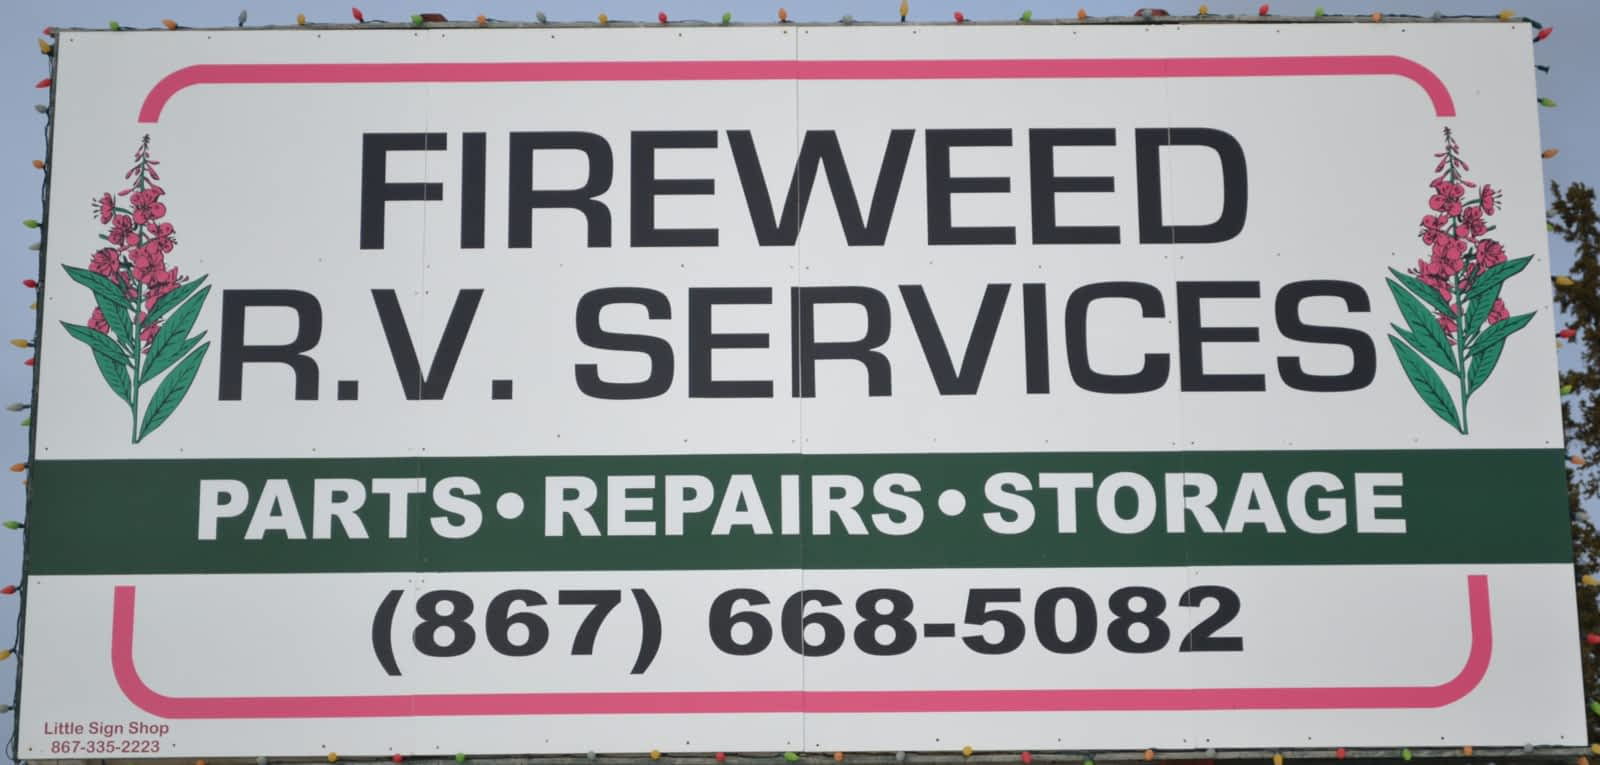 Fireweed RV Services 2